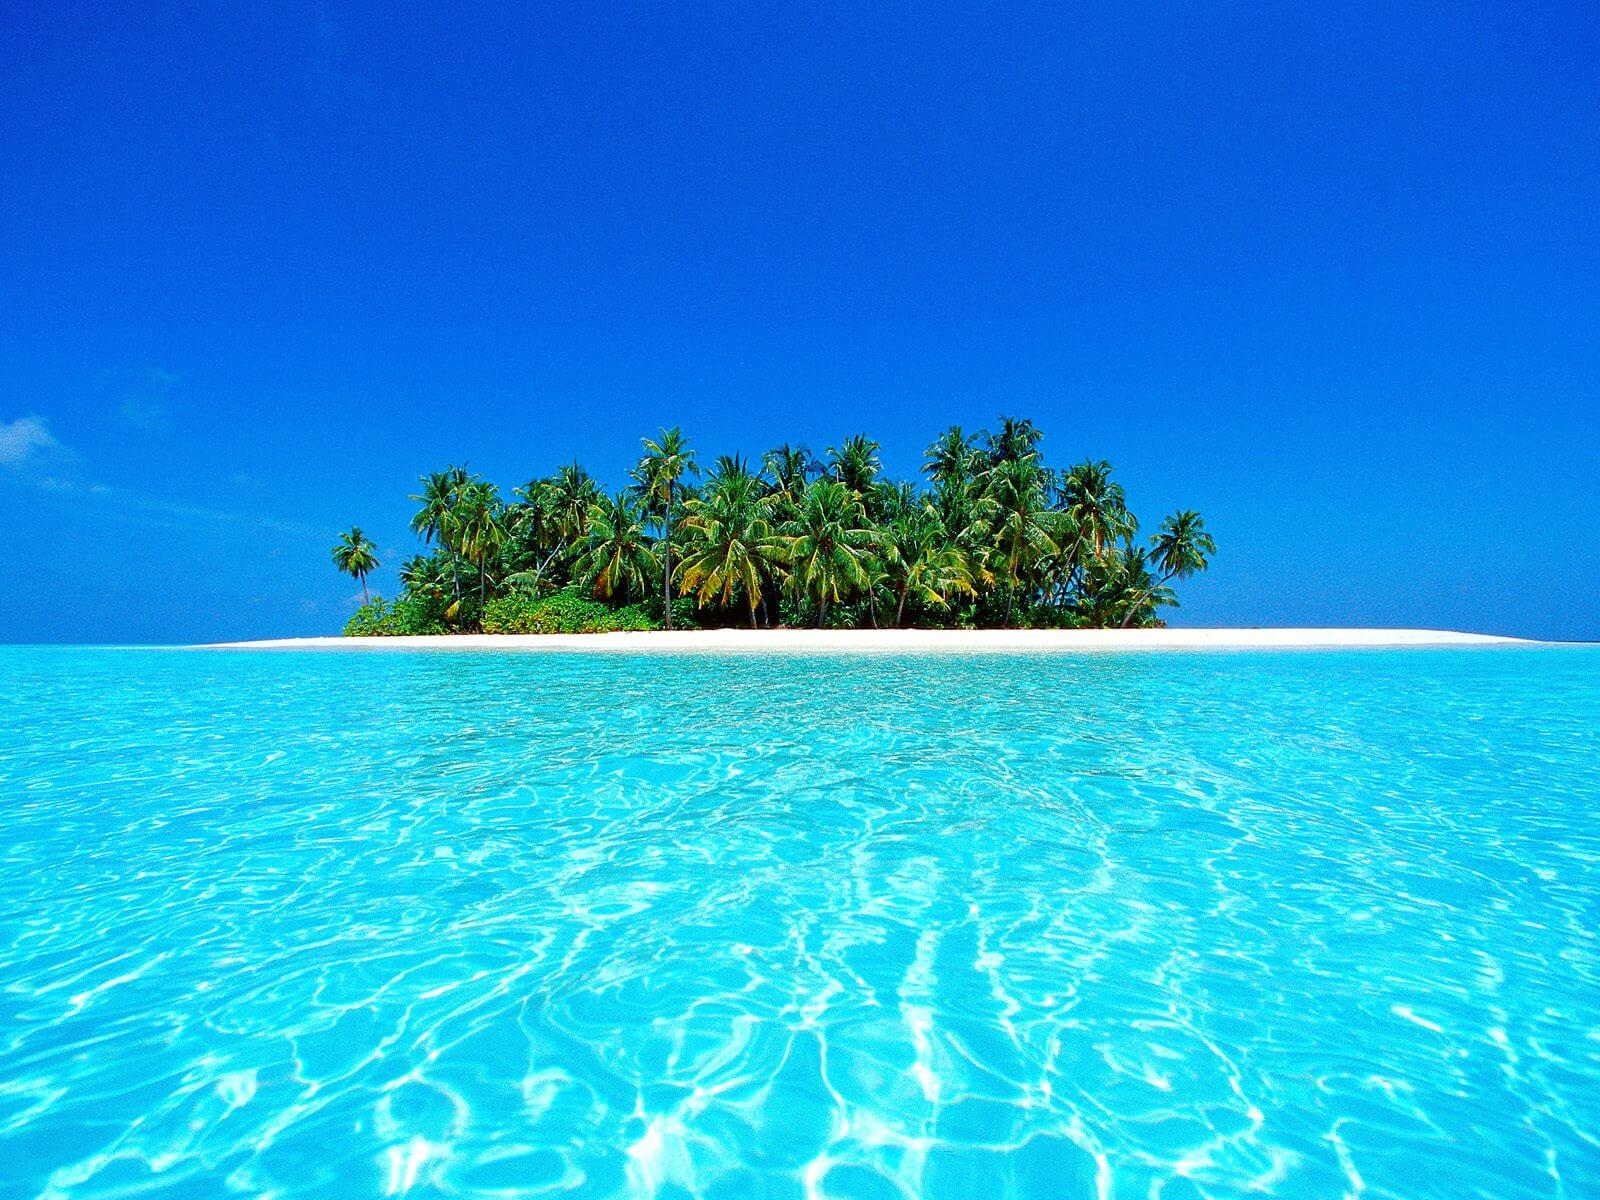 travelco-tour-travelco-tour-packageourism in kannur travelco malidives tour packages